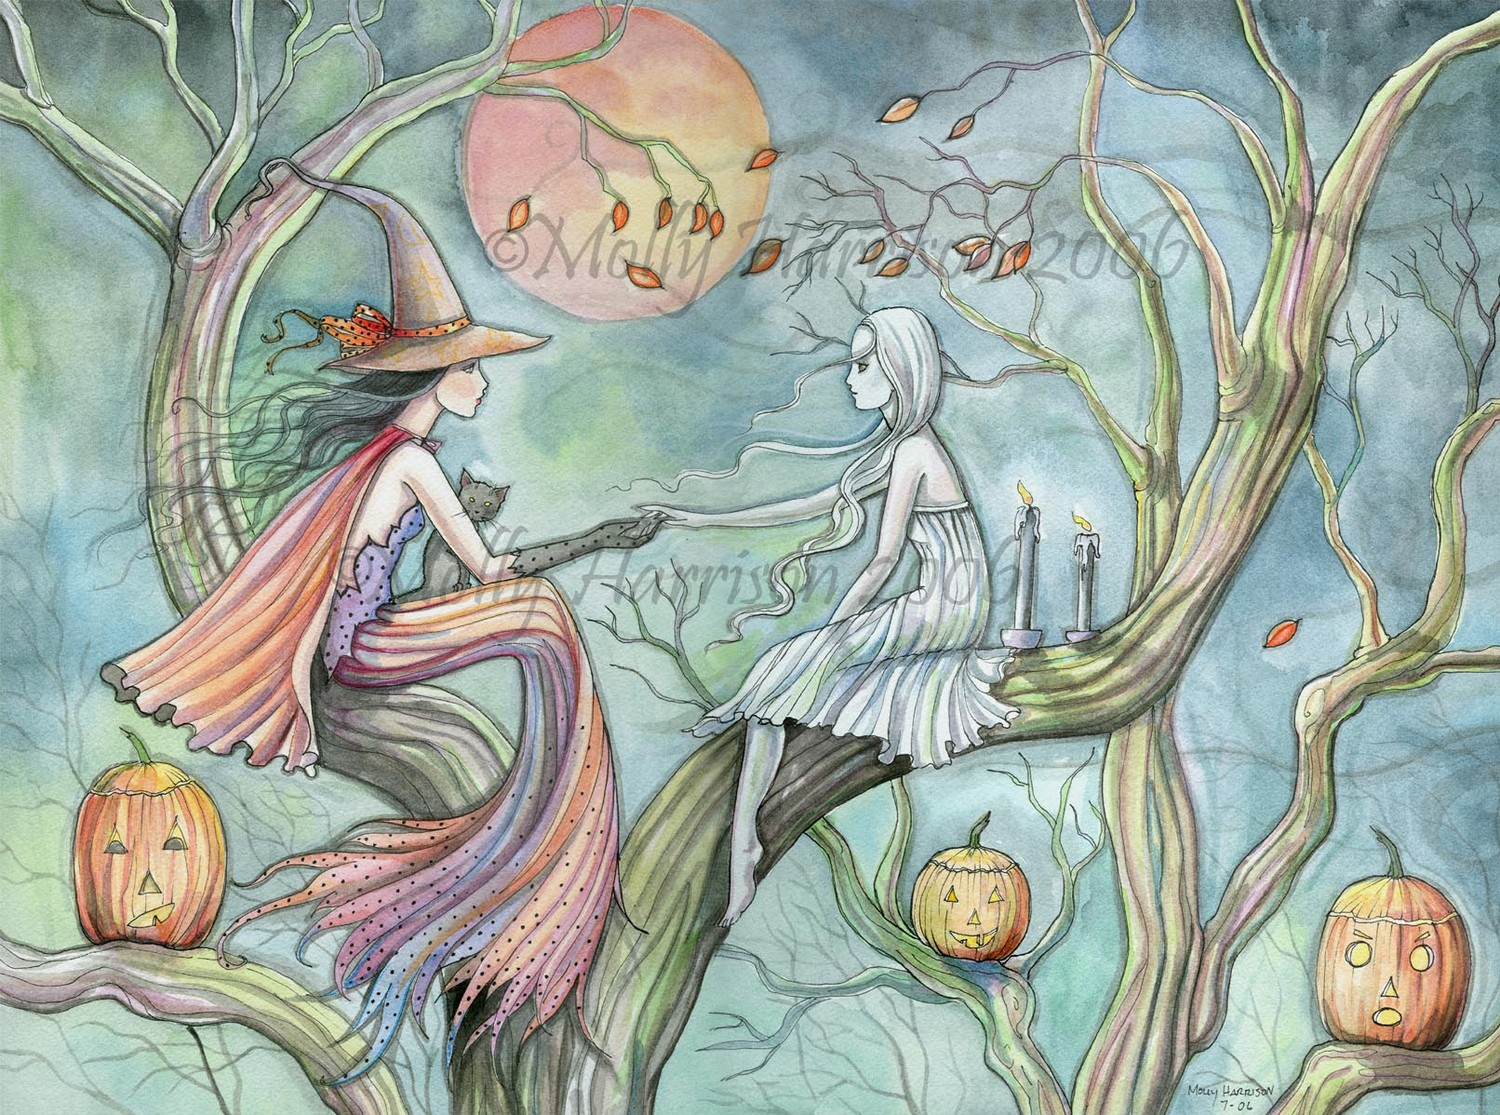 fairies withes and ghosts oh my Oh my see more from behance find this pin and more on knitting - illustrations of mermaids, angels, fairies, witches, ghosts, pin up girls, etc by knitterlyn.